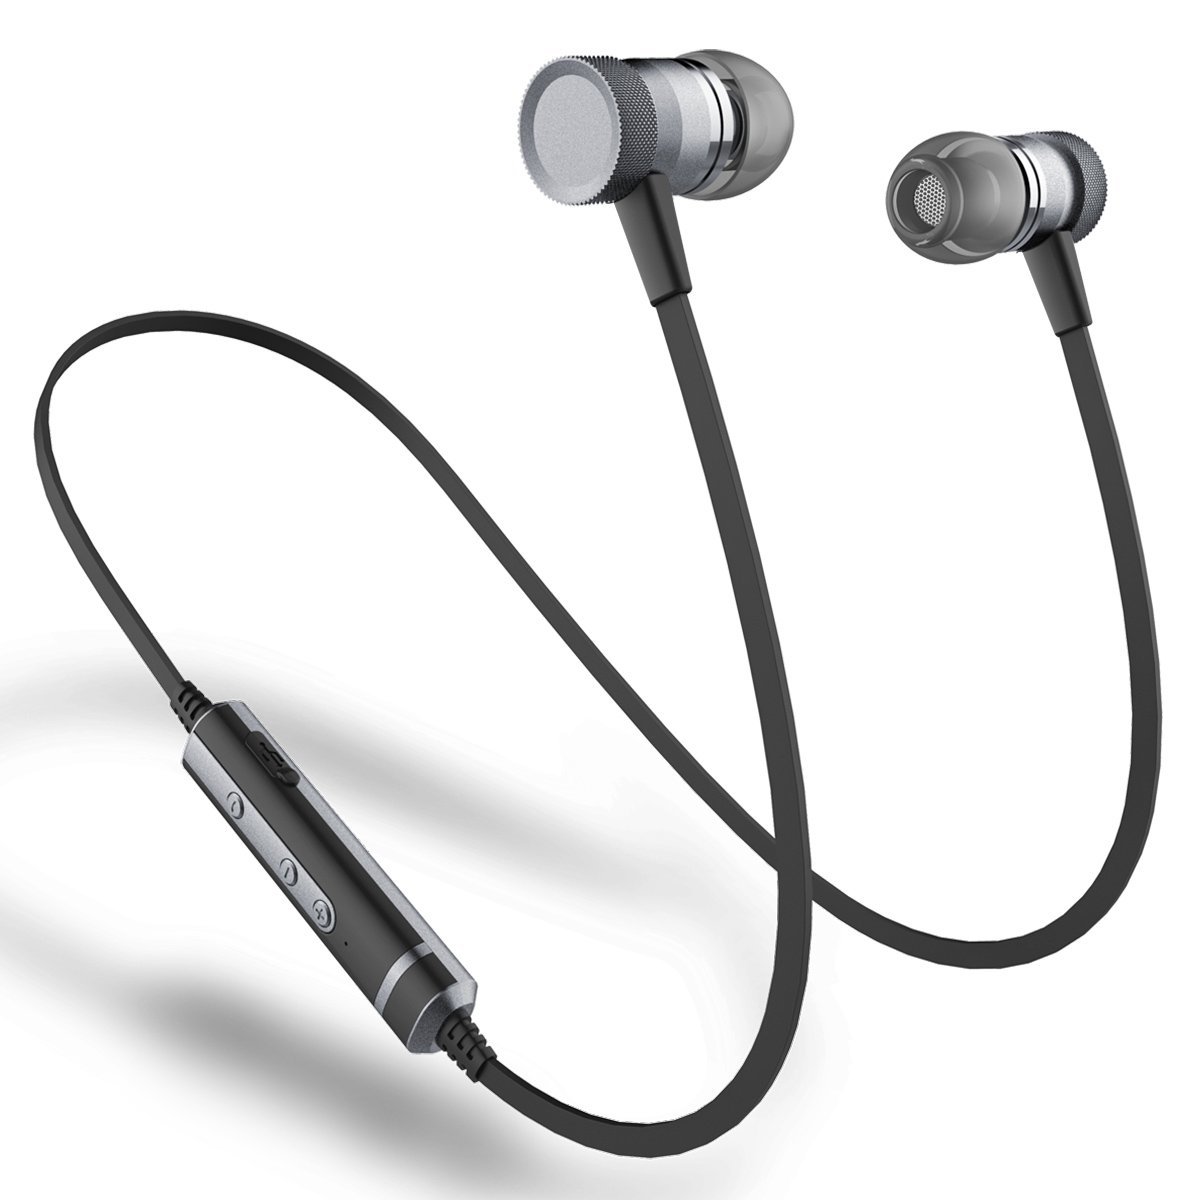 Picun H6 Bluetooth Headphones Wireless with Microphones Sports Earbuds for Running Magnetic, Sweatproof Earbuds IPX4, CSR Bluetooth 4.1 for Phone / Android Workout Headphones Wireless (Black)